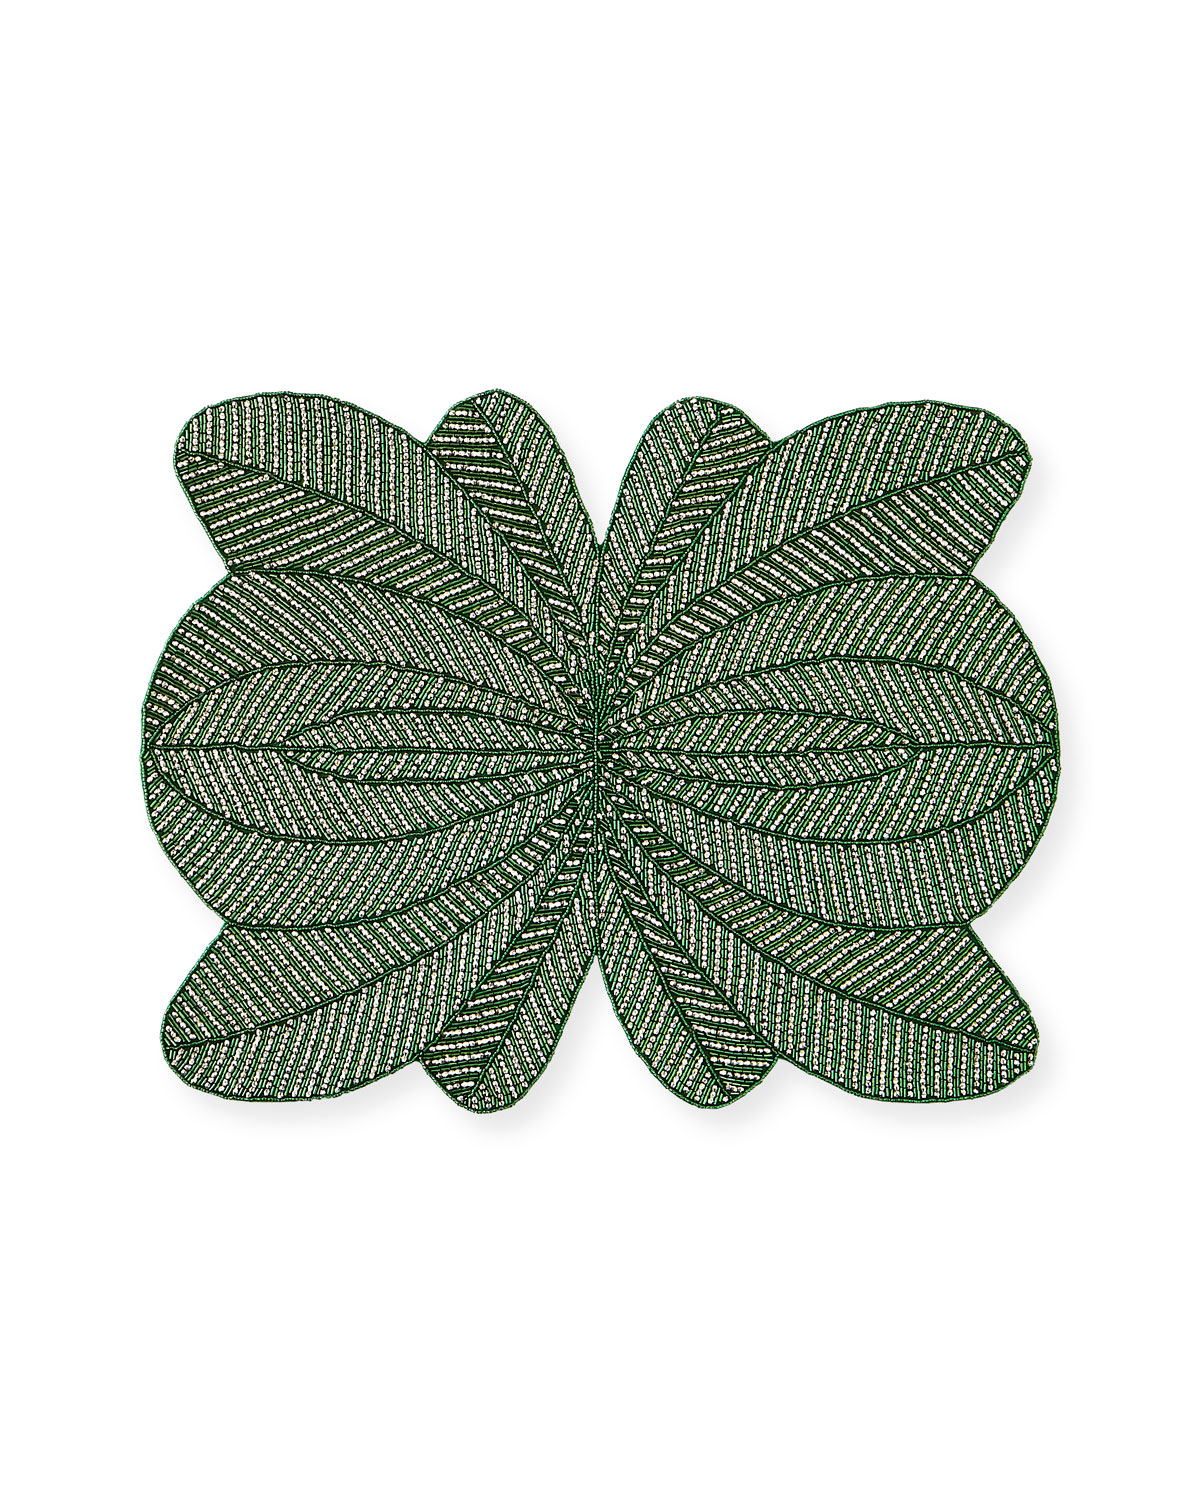 Nomi K GREEN PEACOCK HAND-BEADED PLACEMAT